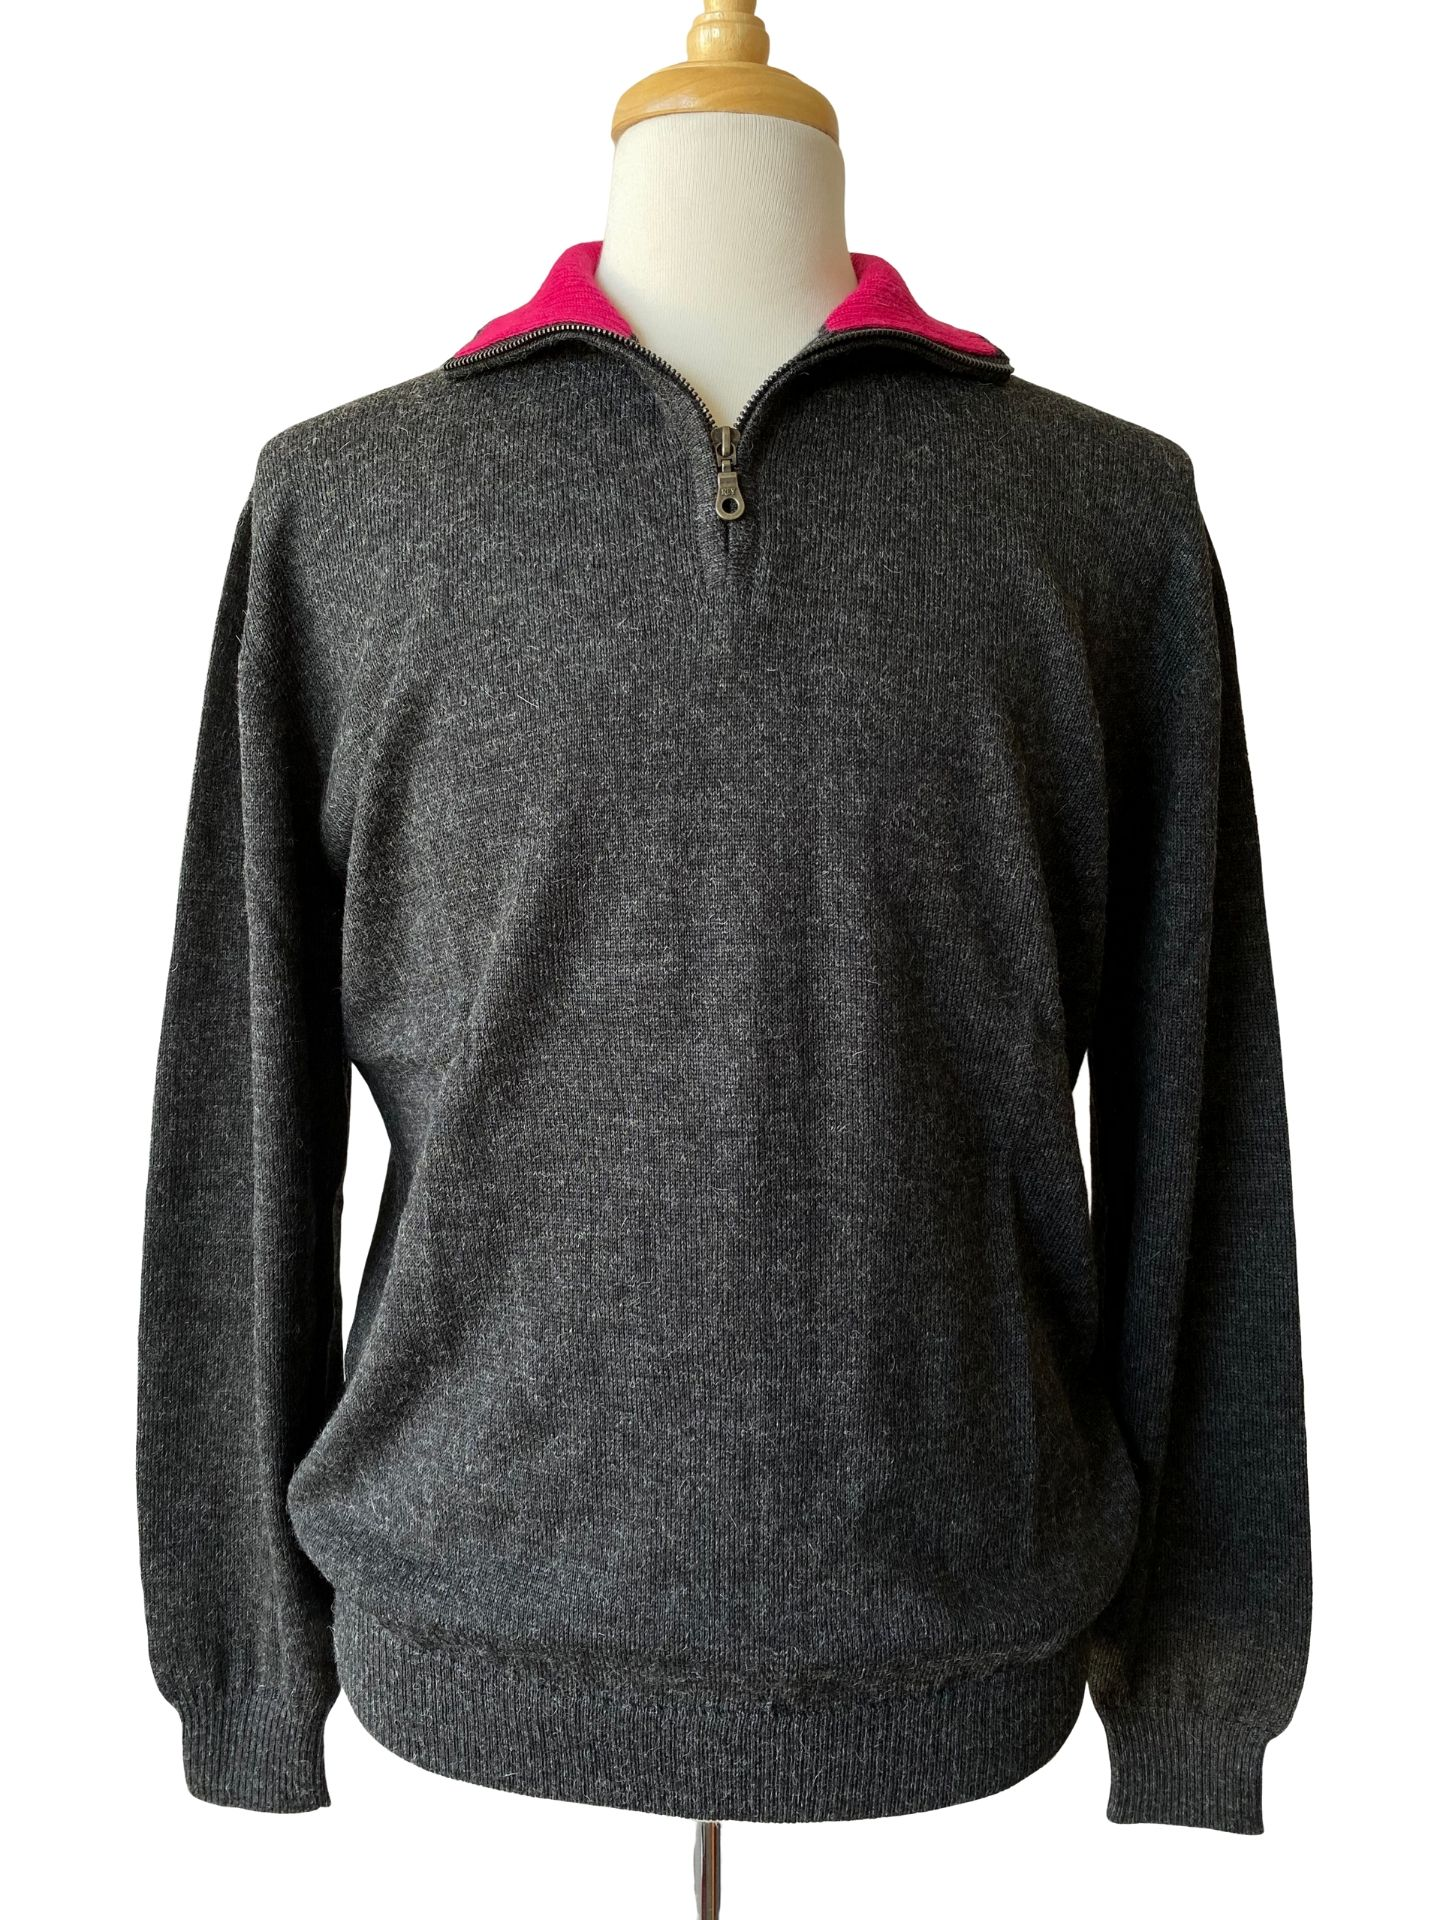 NEW - Brent Half Zip Sweater - Charcoal/Raspberry